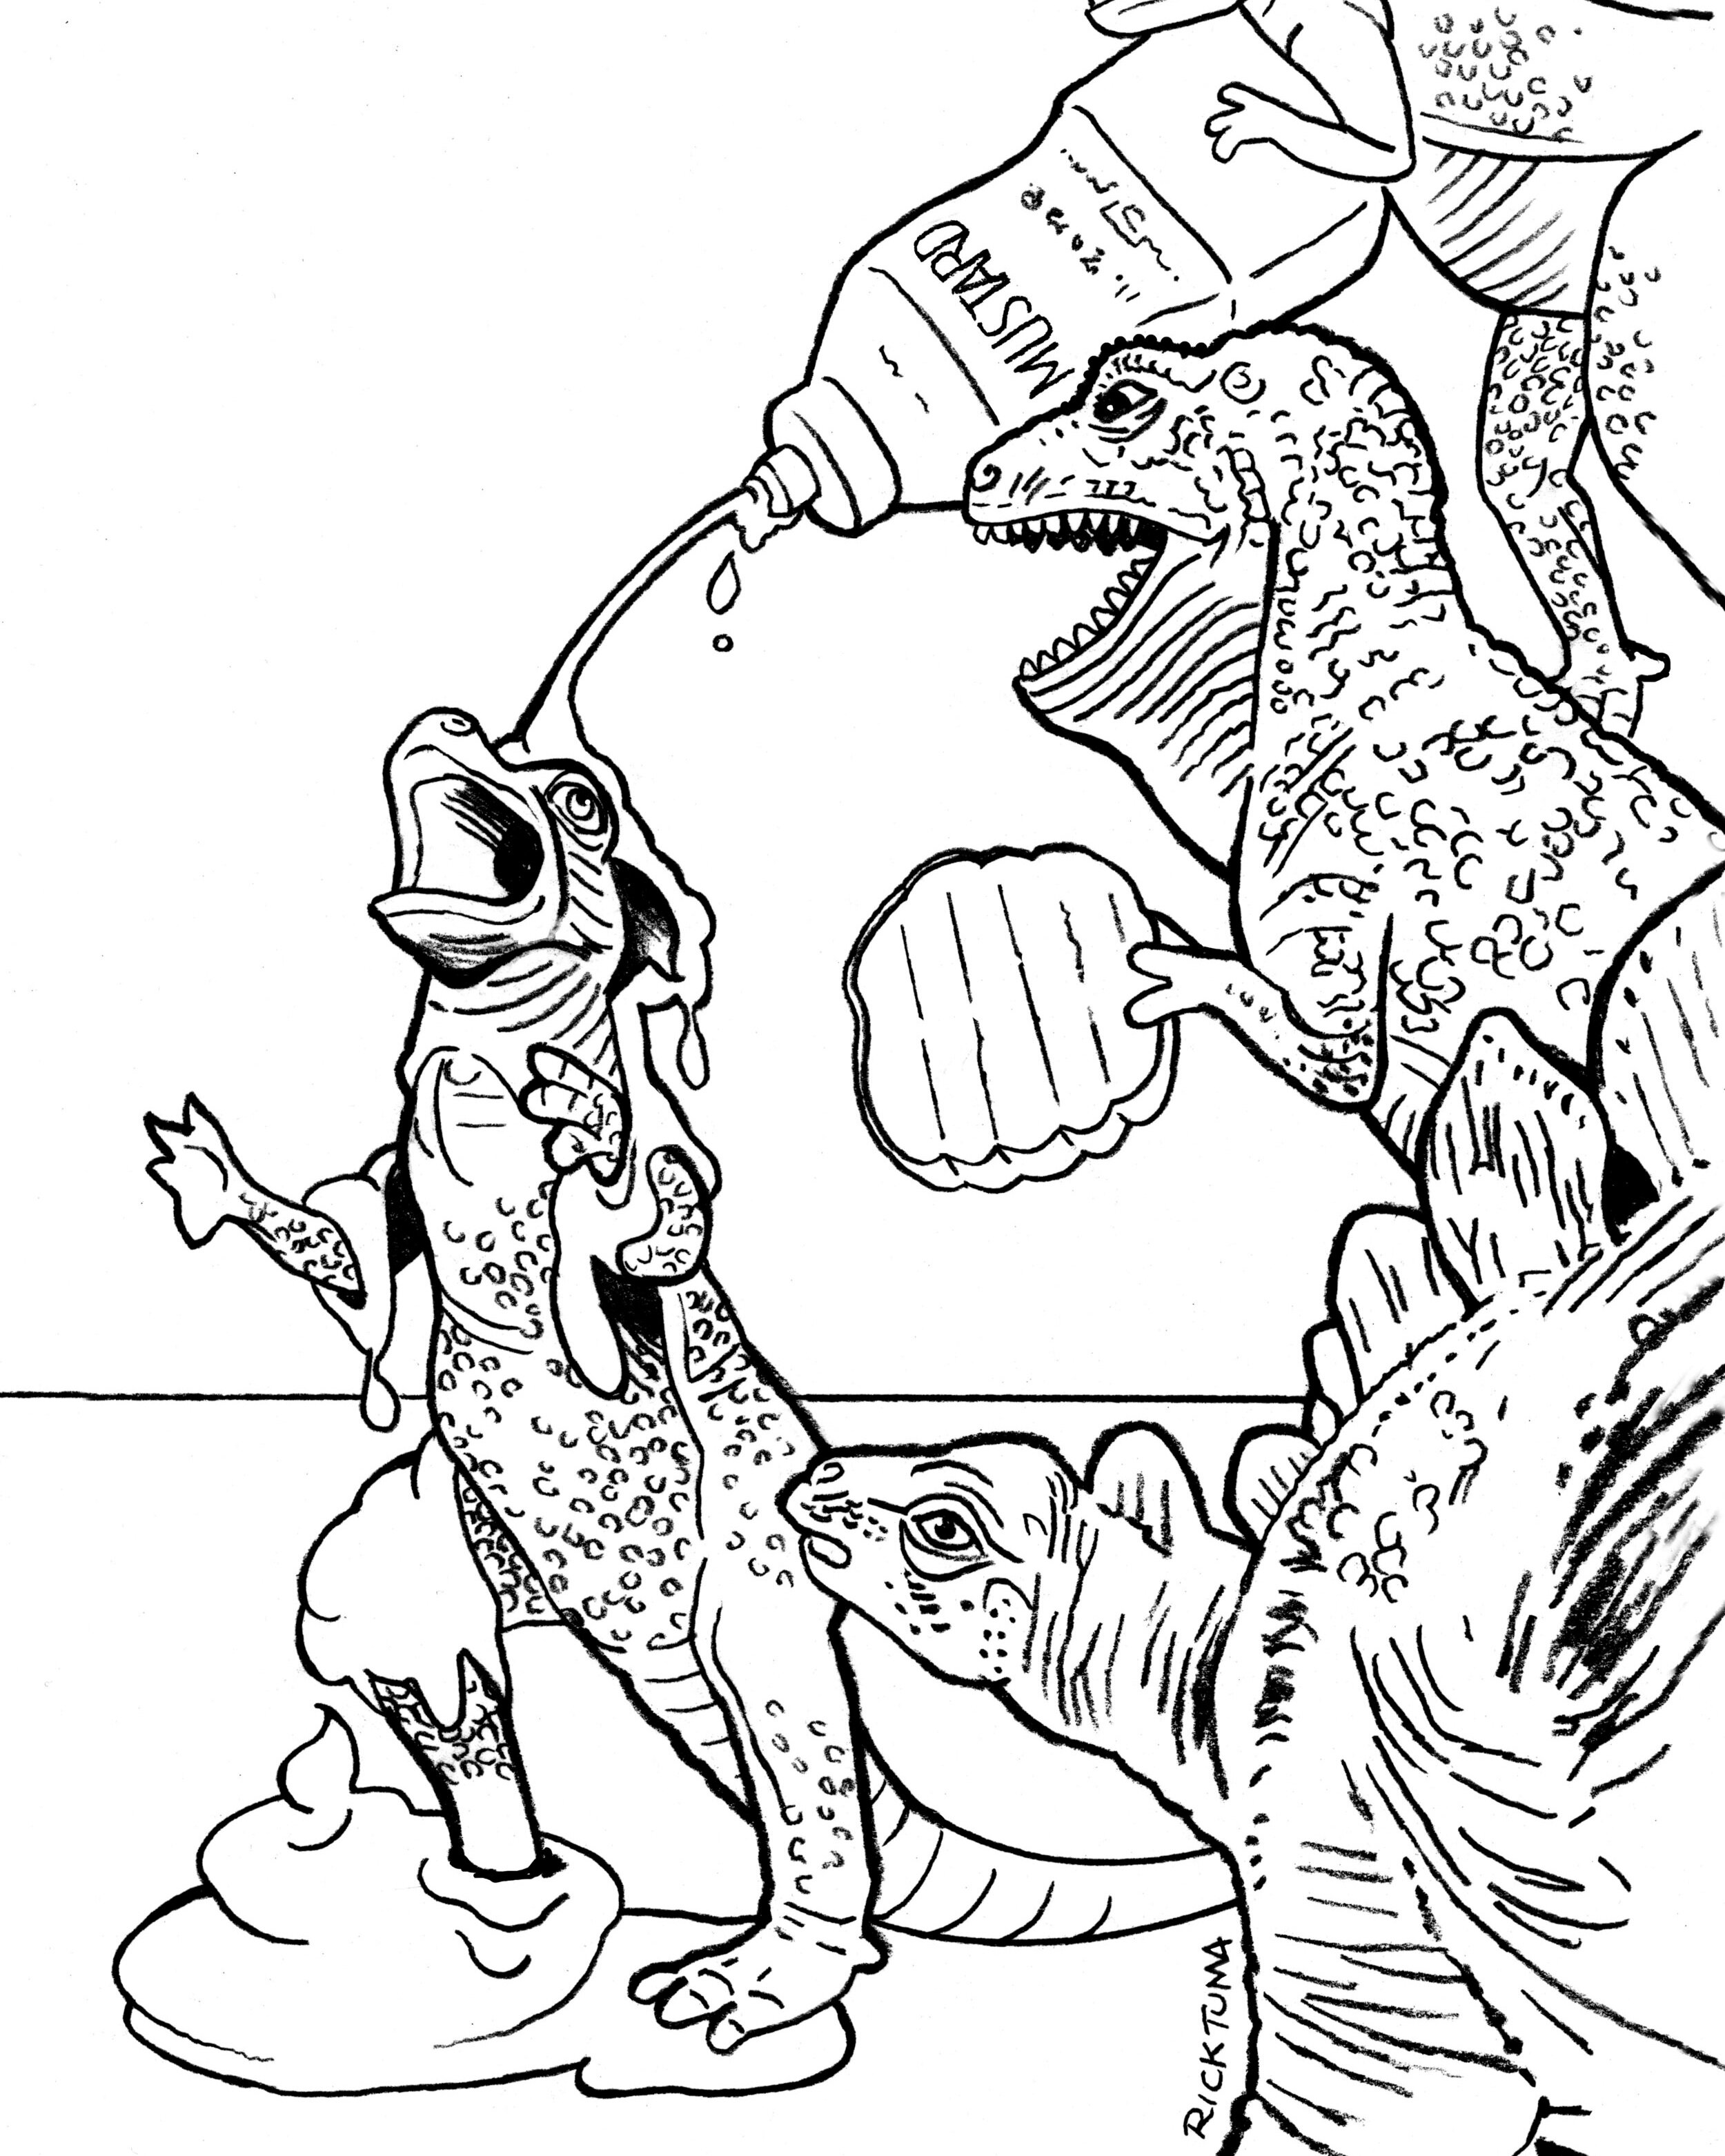 Dinosaur dot to dot | Free Printable Coloring Pages | 1250x1000